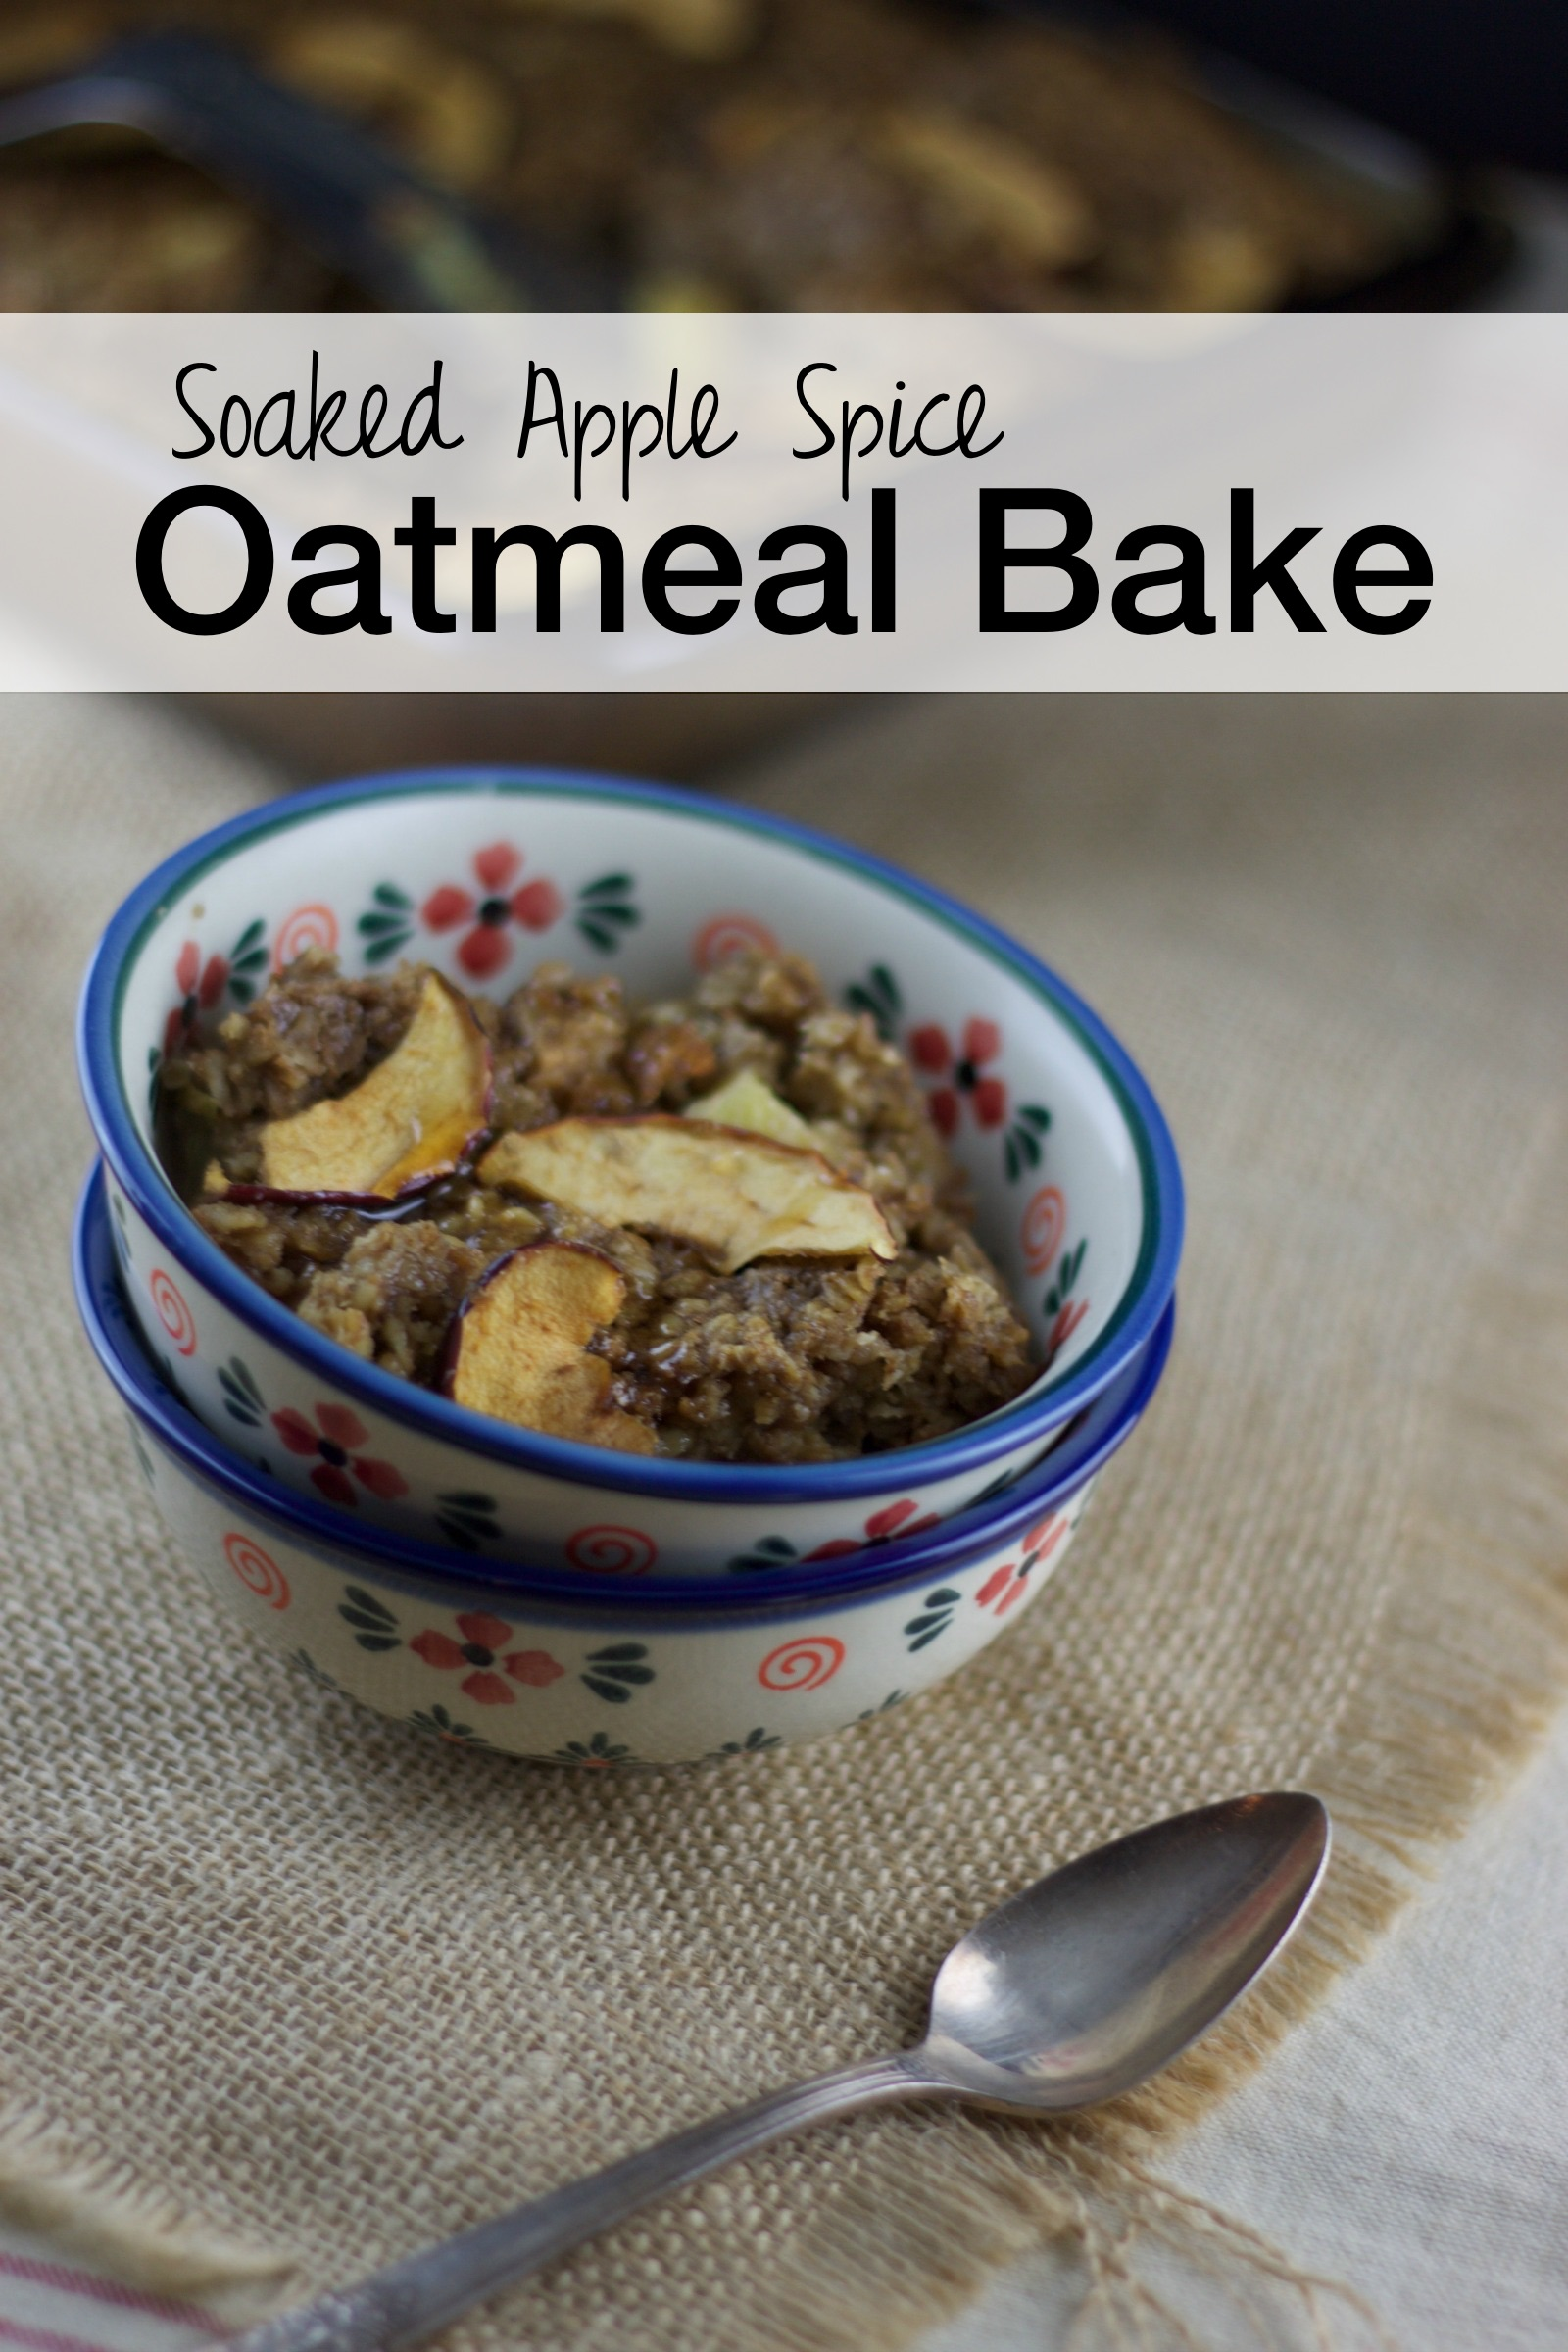 Soaked Apple Spice Oatmeal Bake | Simple breakfasts are always a win in the kitchen, and an oatmeal bake fits the bill! Most of the mixing is done the night before, so in the morning all you have to do is add the last few ingredients while the oven preheats. Hearty oats, fresh apples, warm spices, baked till golden brown -- this is the perfect breakfast on a cold winter morning. | TraditionalCookingSchool.com